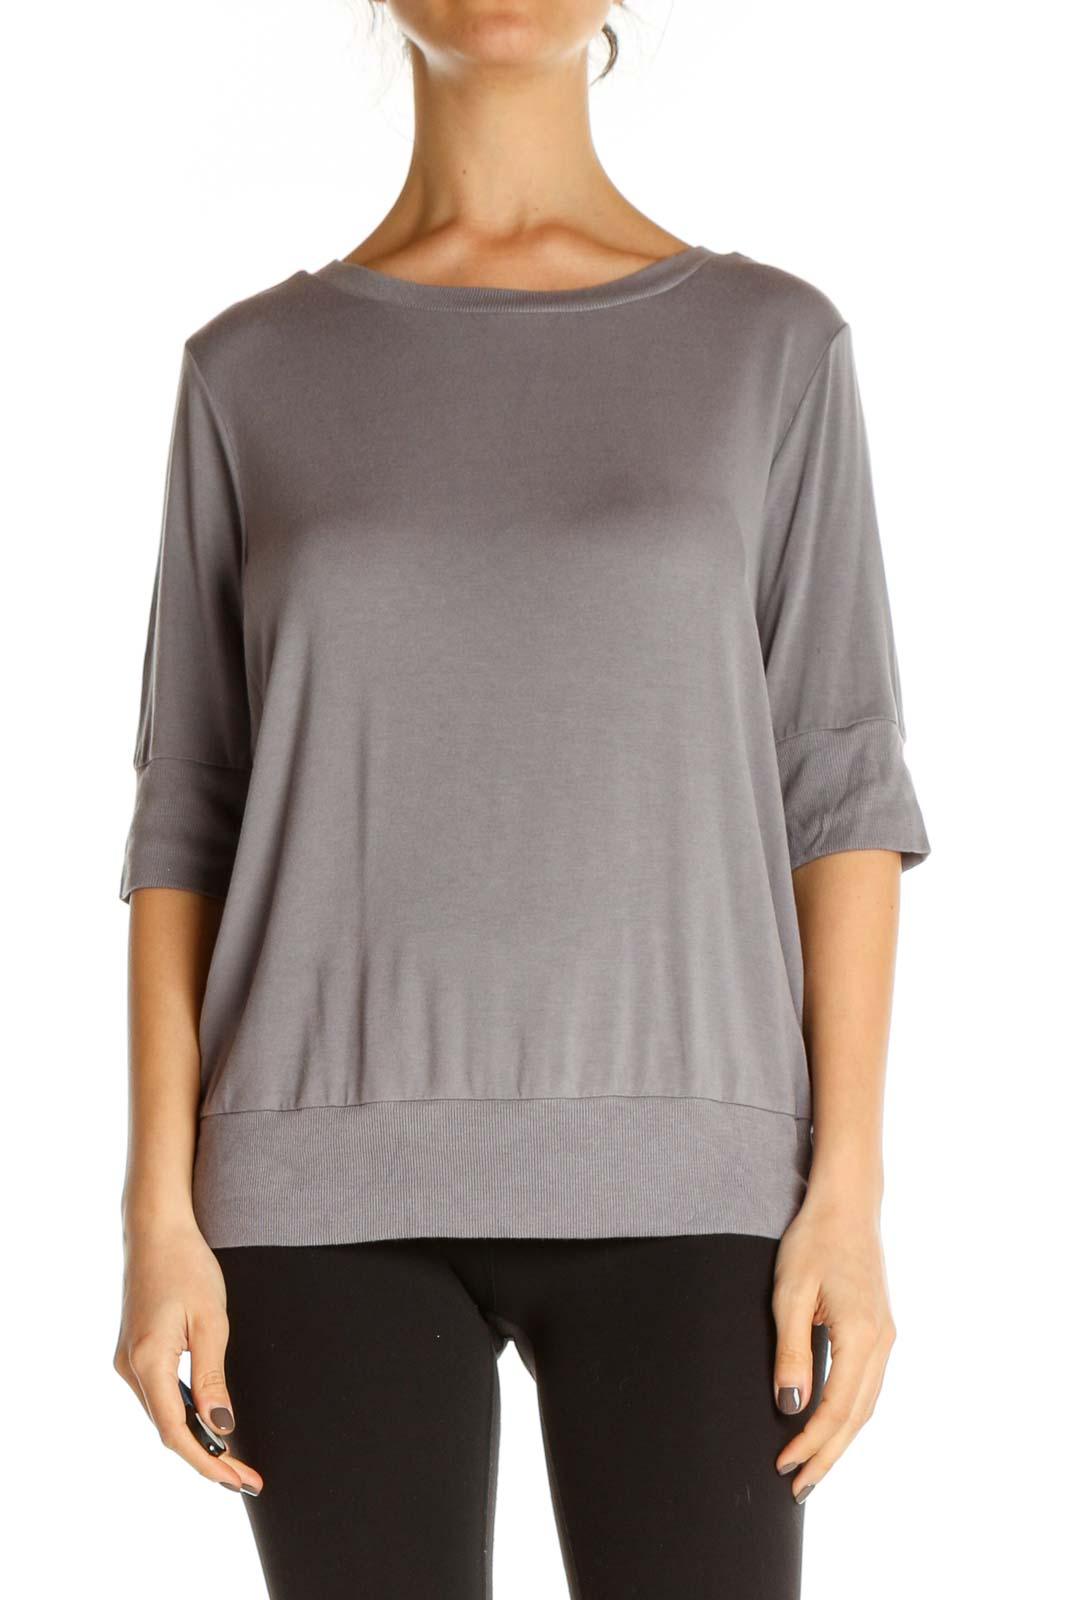 Gray Solid All Day Wear Blouse Front